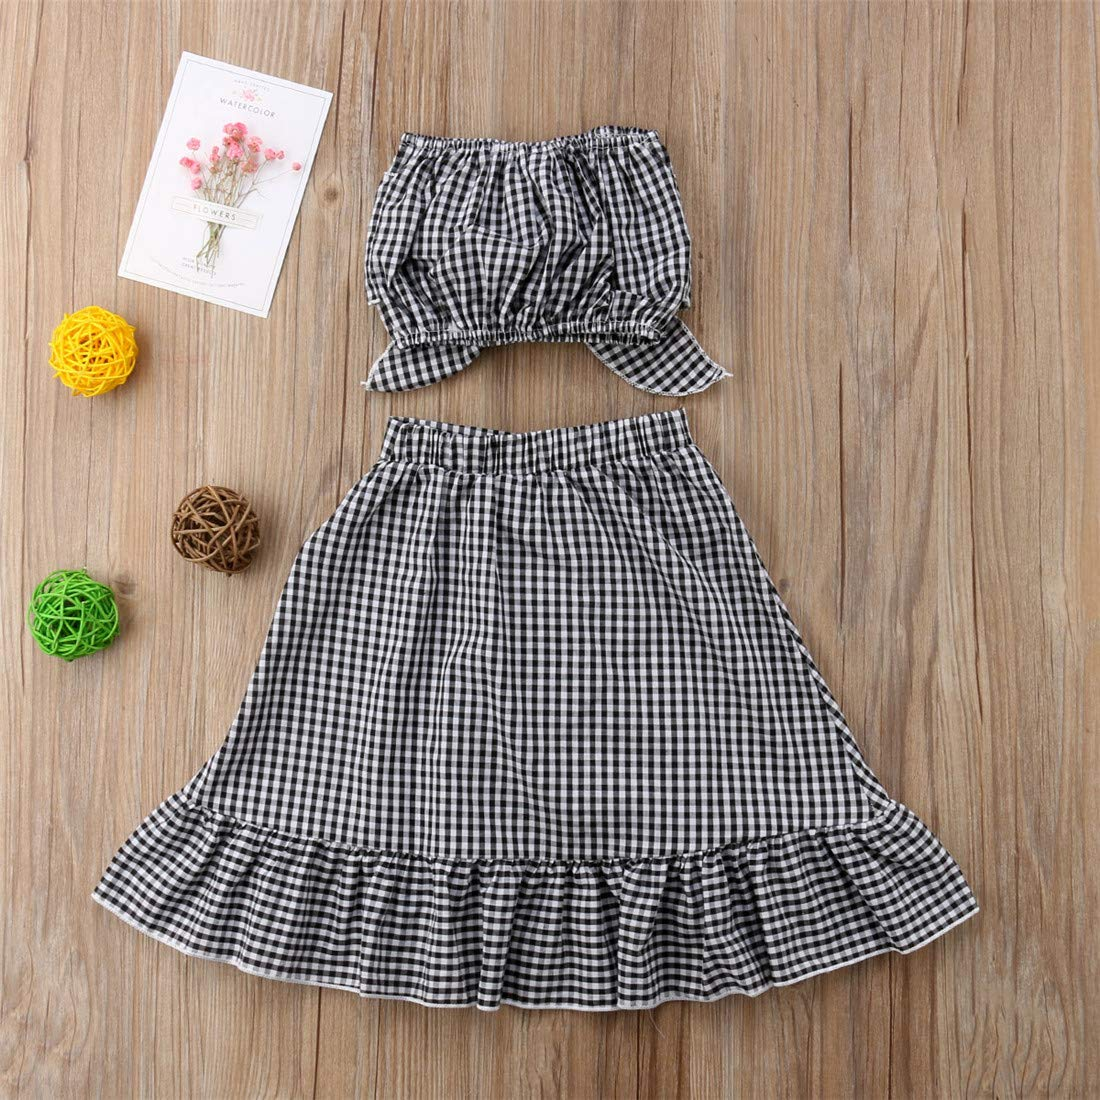 Baby Girl Toddler 2/3 Sleeve Black Crop Top + Grey Shorts Bowknot Skirts Outfit Clothes 2Pcs/ Set (Plaid, 6-12 Months) by Mornbaby (Image #6)